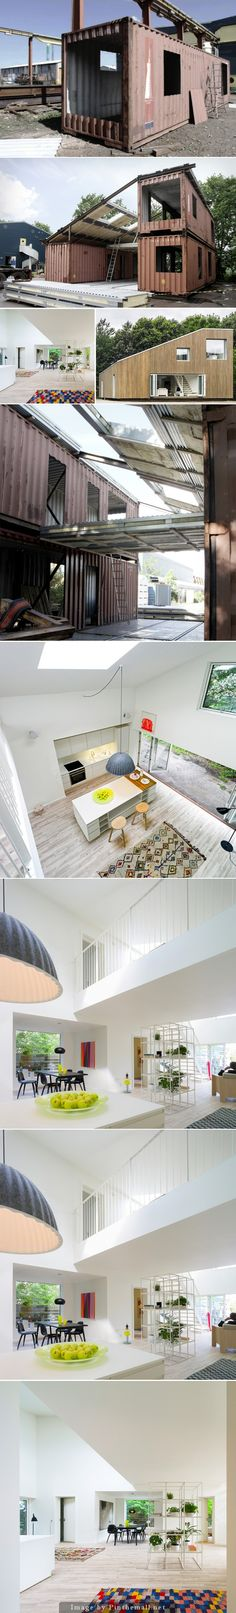 Upcycled Shipping Container House - created via http://pinthemall.net